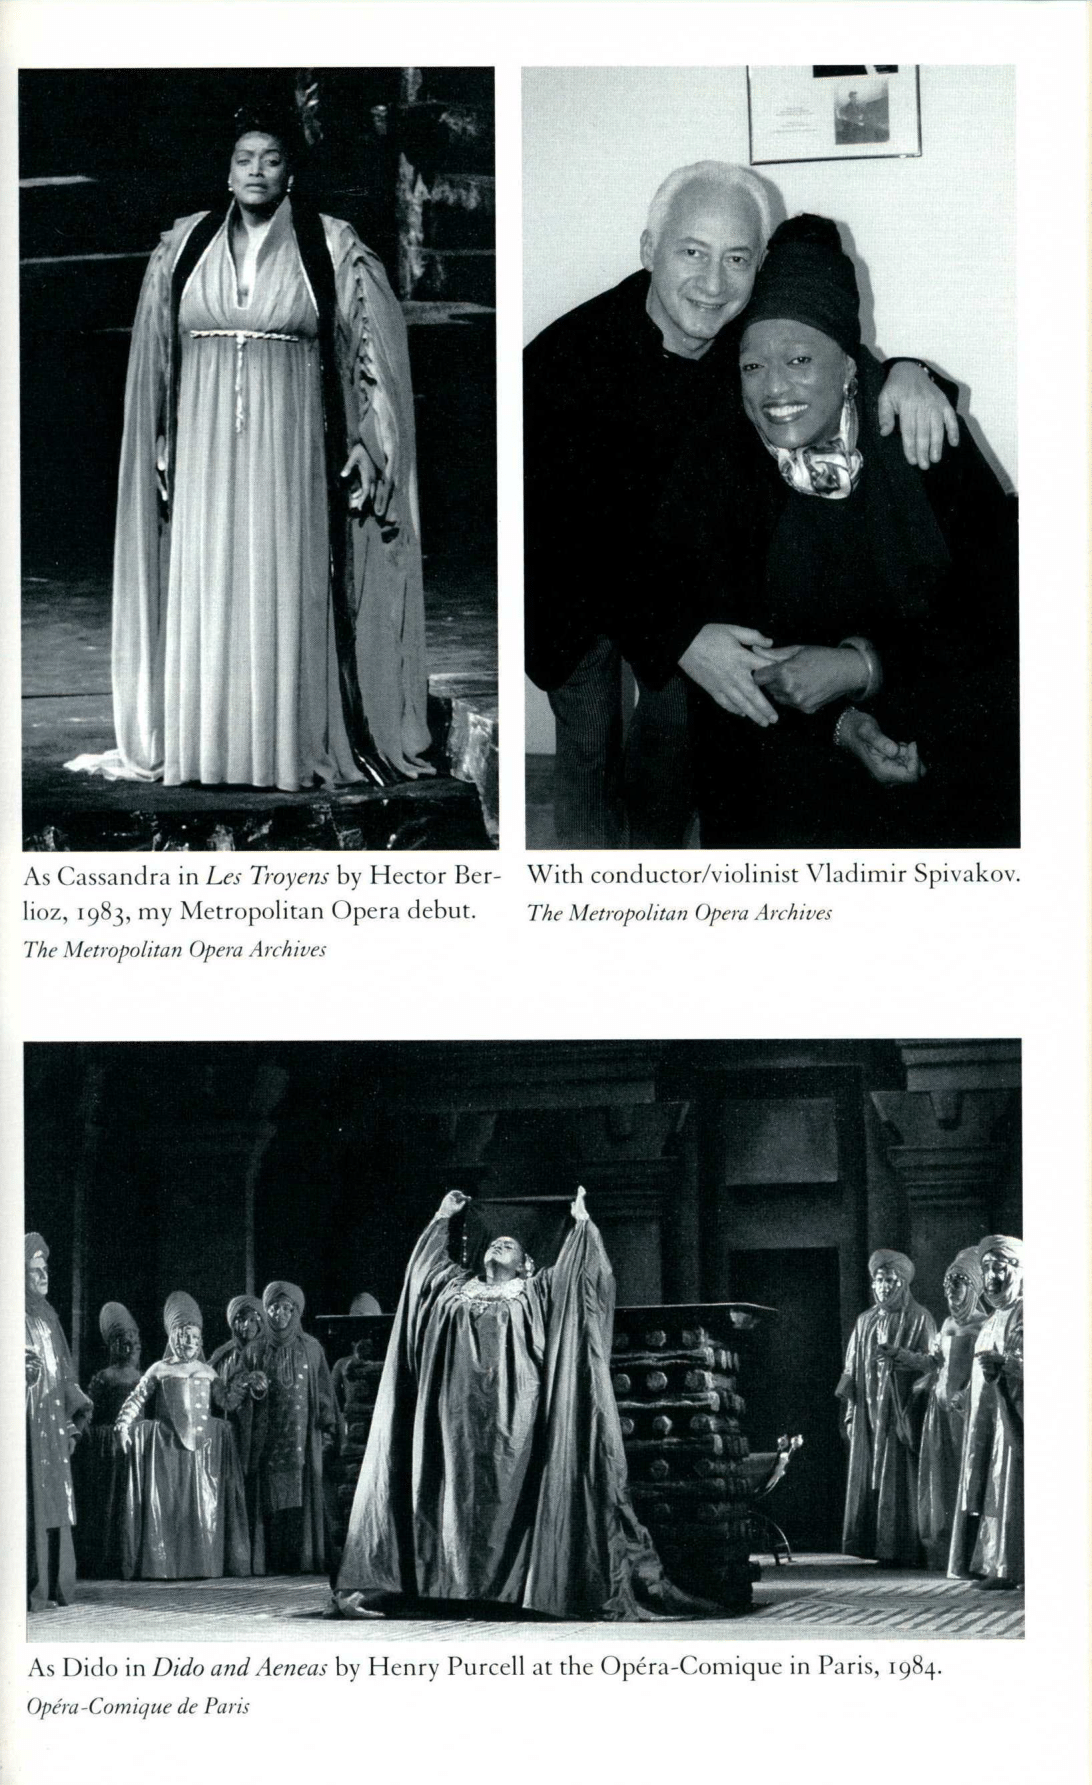 Jessye Norman as Cassandra, second photo with conductor Vladmir Spivakov, and third photo singning Dido